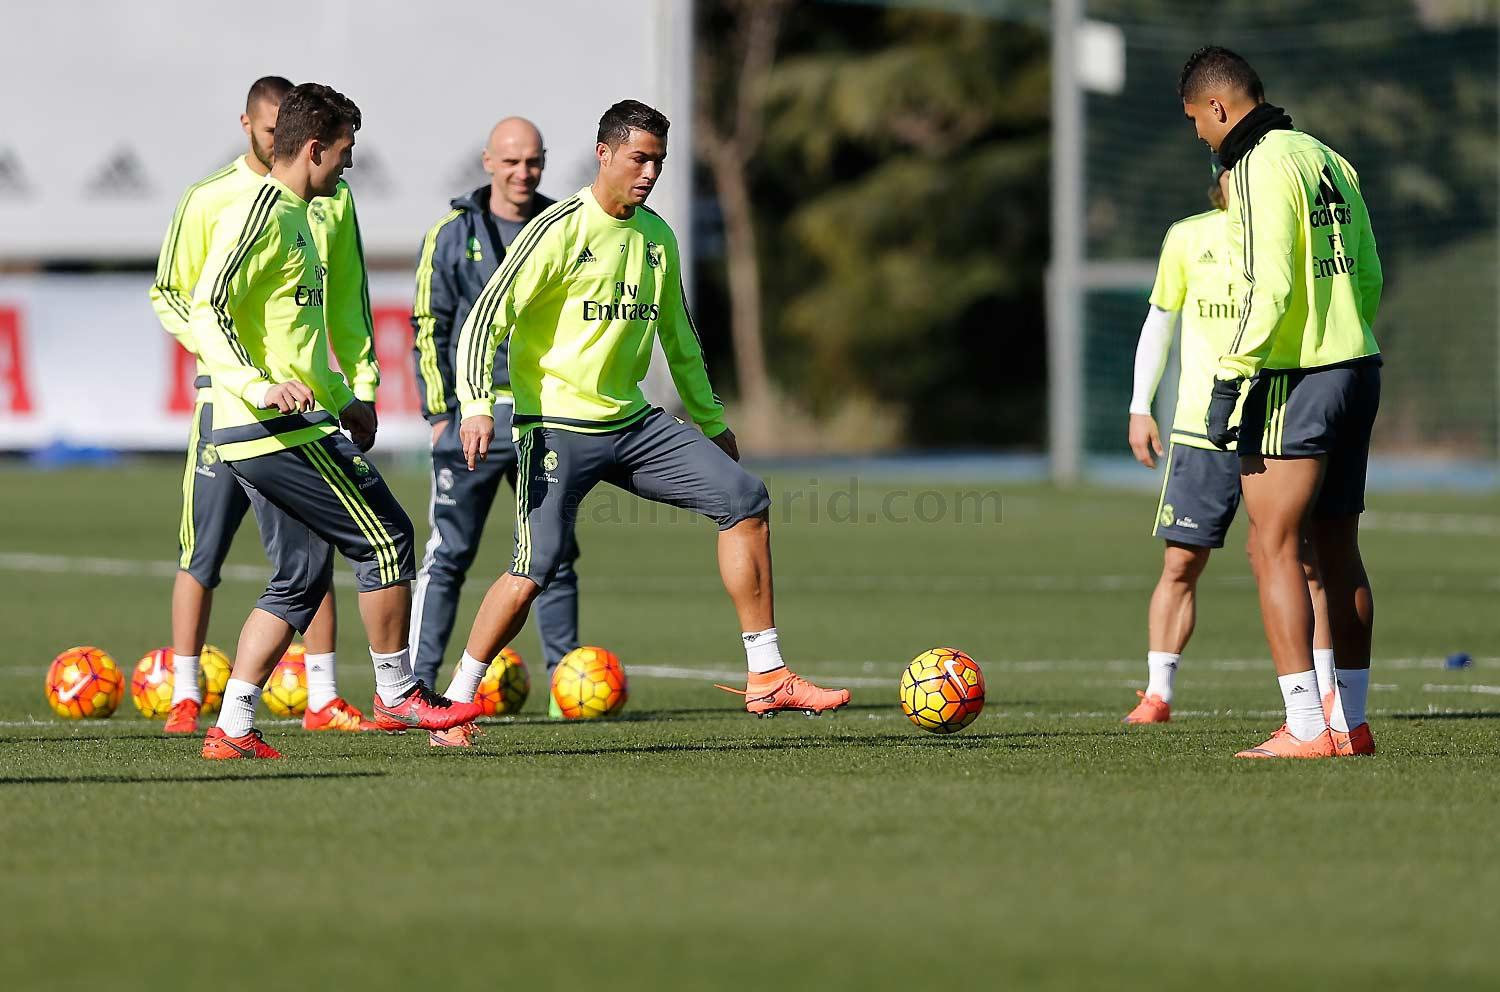 Real Madrid - Entrenamiento del Real Madrid - 19-02-2016